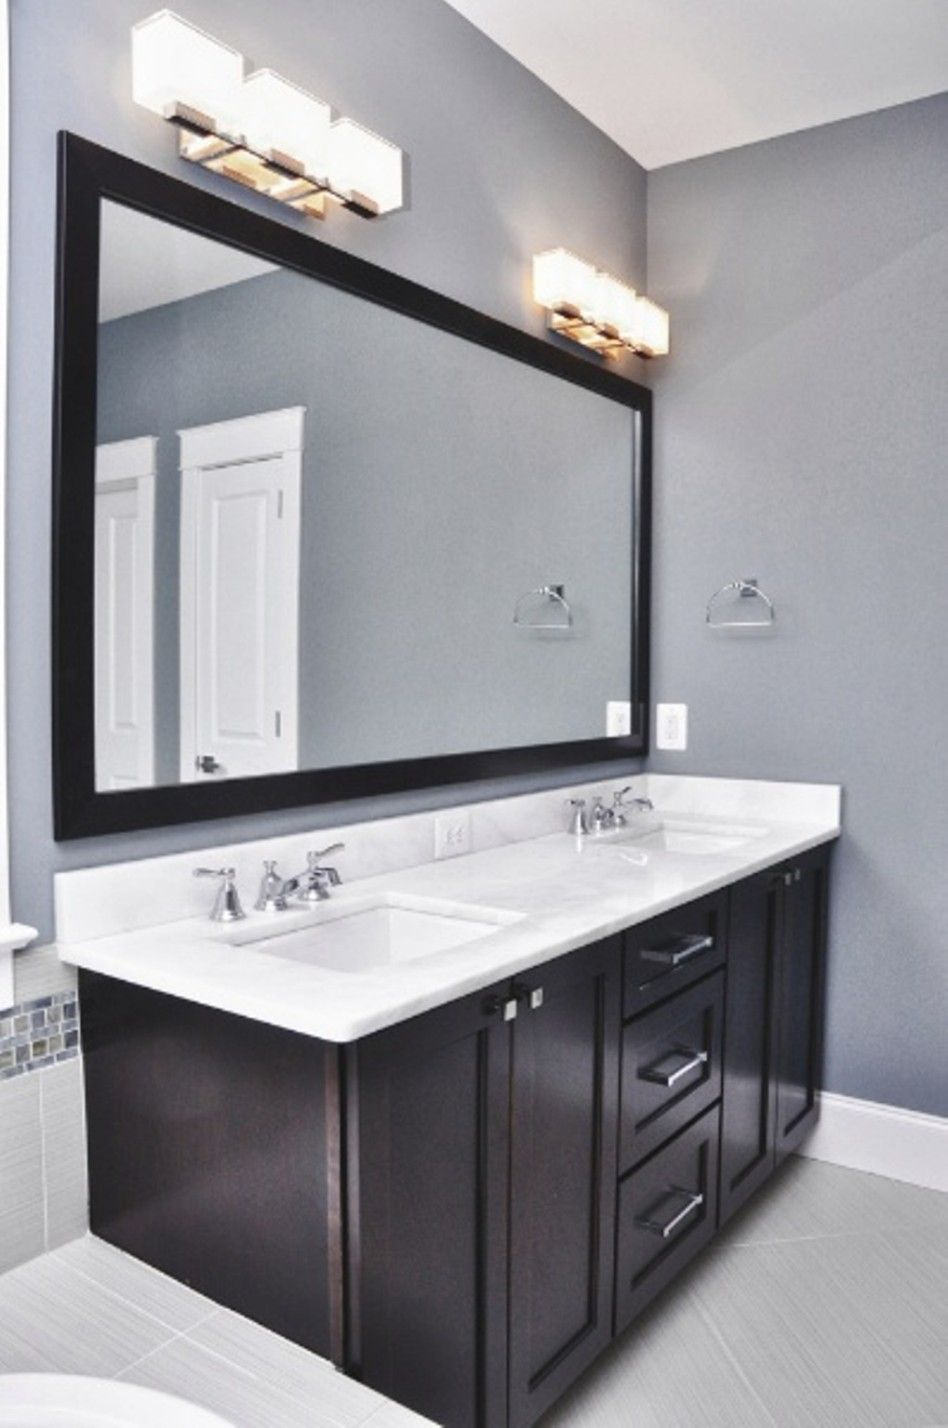 Bathroom Charming Lighting Fixtures Over Mirror Elagant Grey Wall And Dark Wood Cabinet With Light Big White